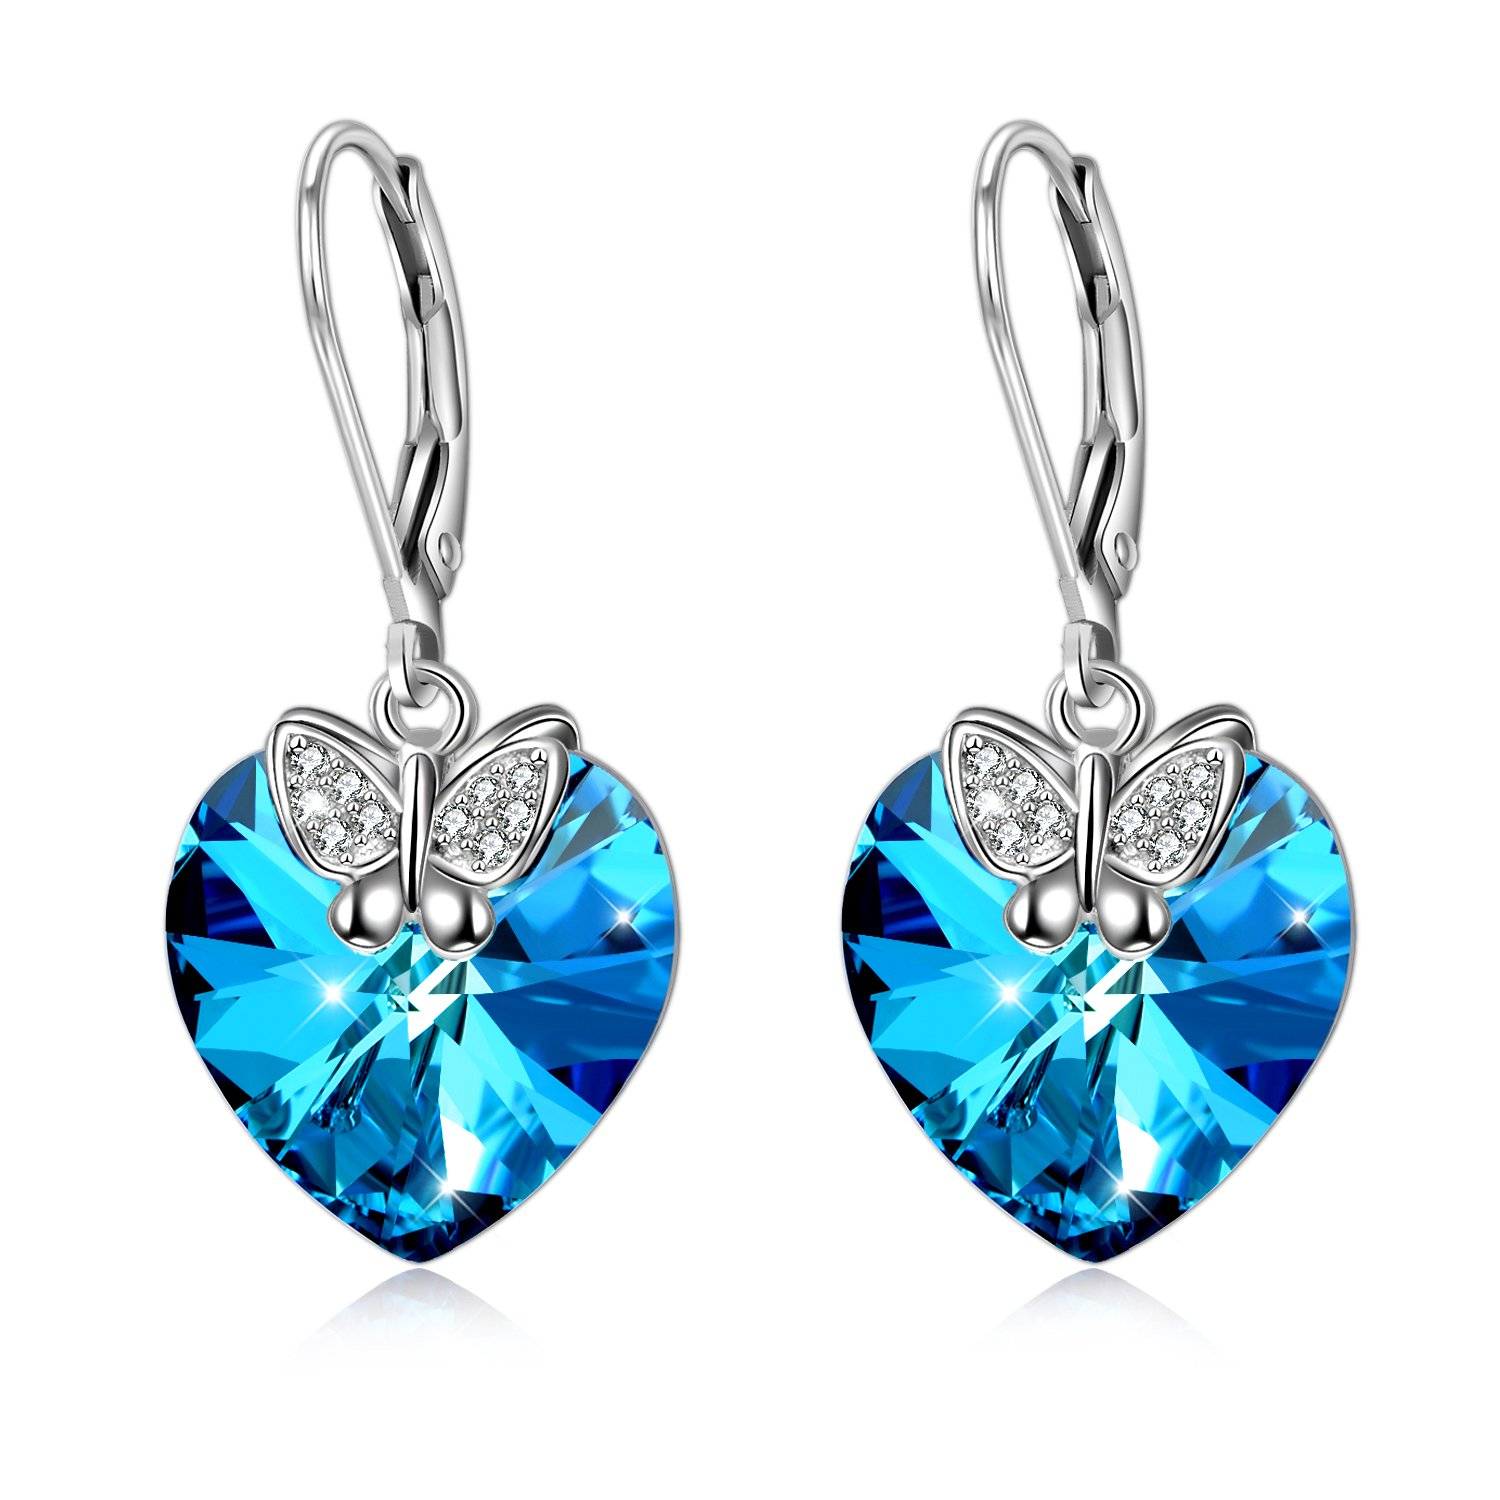 Butterfly Leverback Women Dangle Drop Earrings 925 Sterling Silver with Swarovski Blue Love Heart Crystals Jewelry Gifts for Her